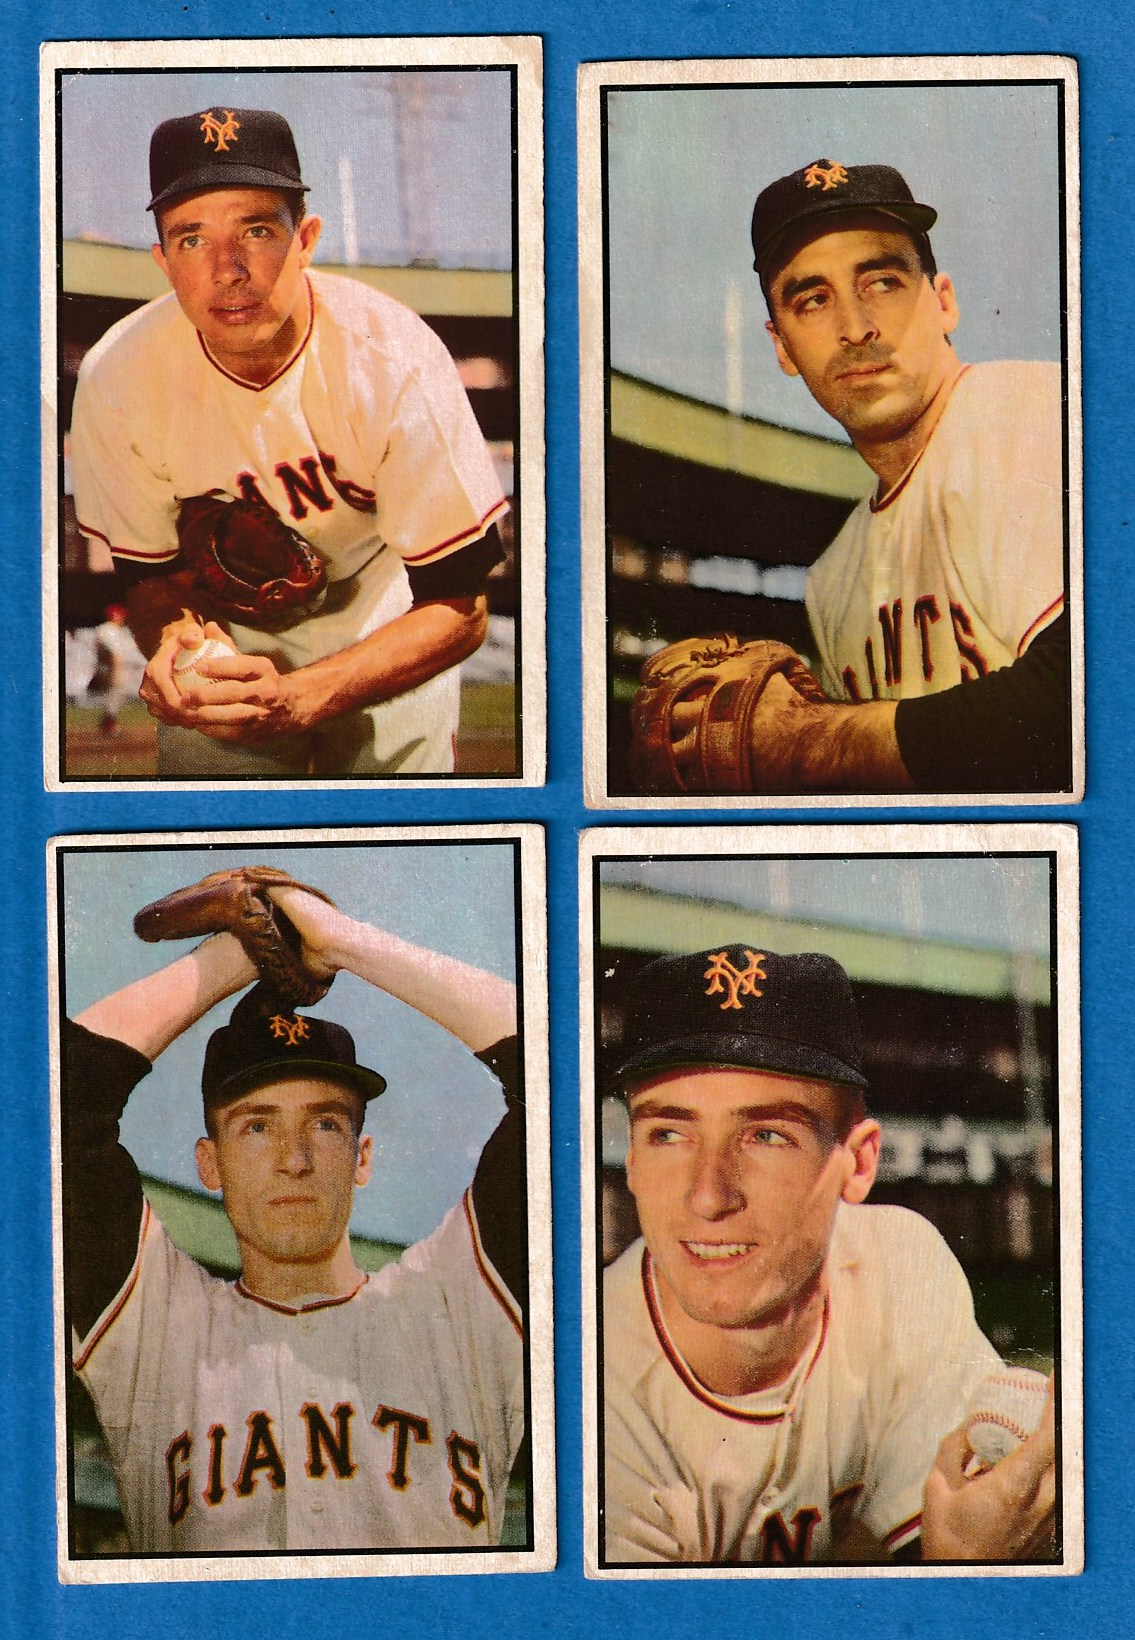 1953 Bowman Color  - GIANTS - Lot of (5) different with Leo Durocher Baseball cards value